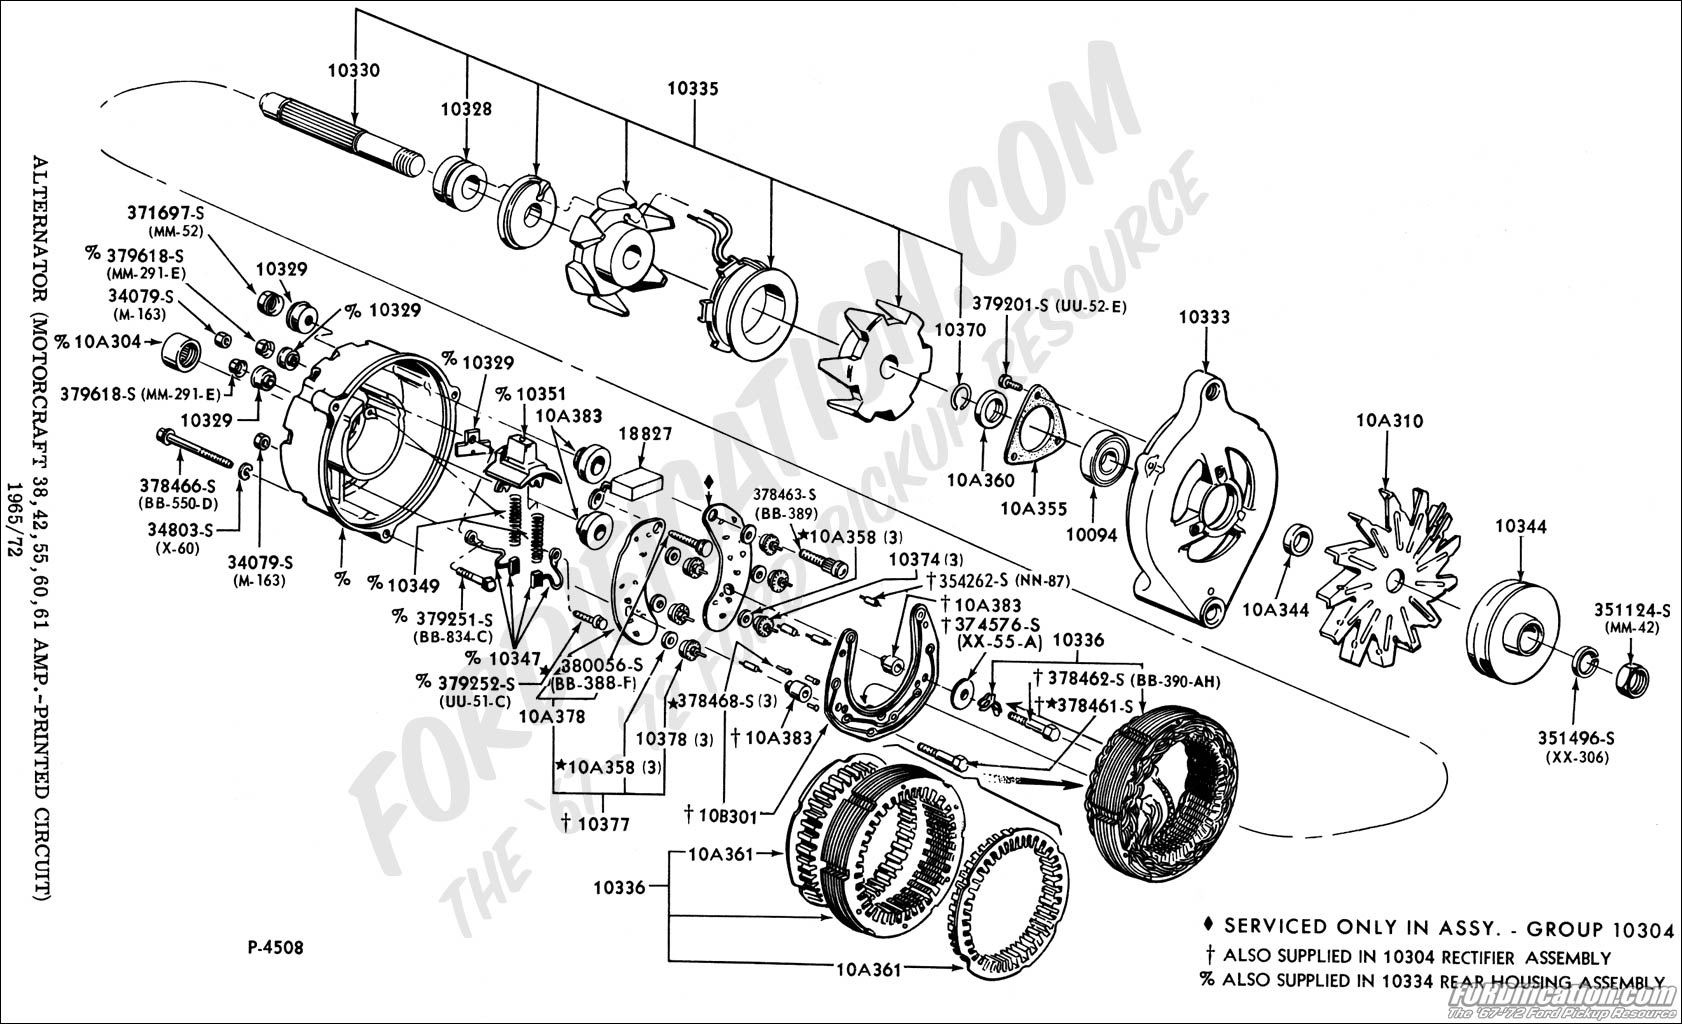 Schematics i on 1965 chevy impala wiring diagram